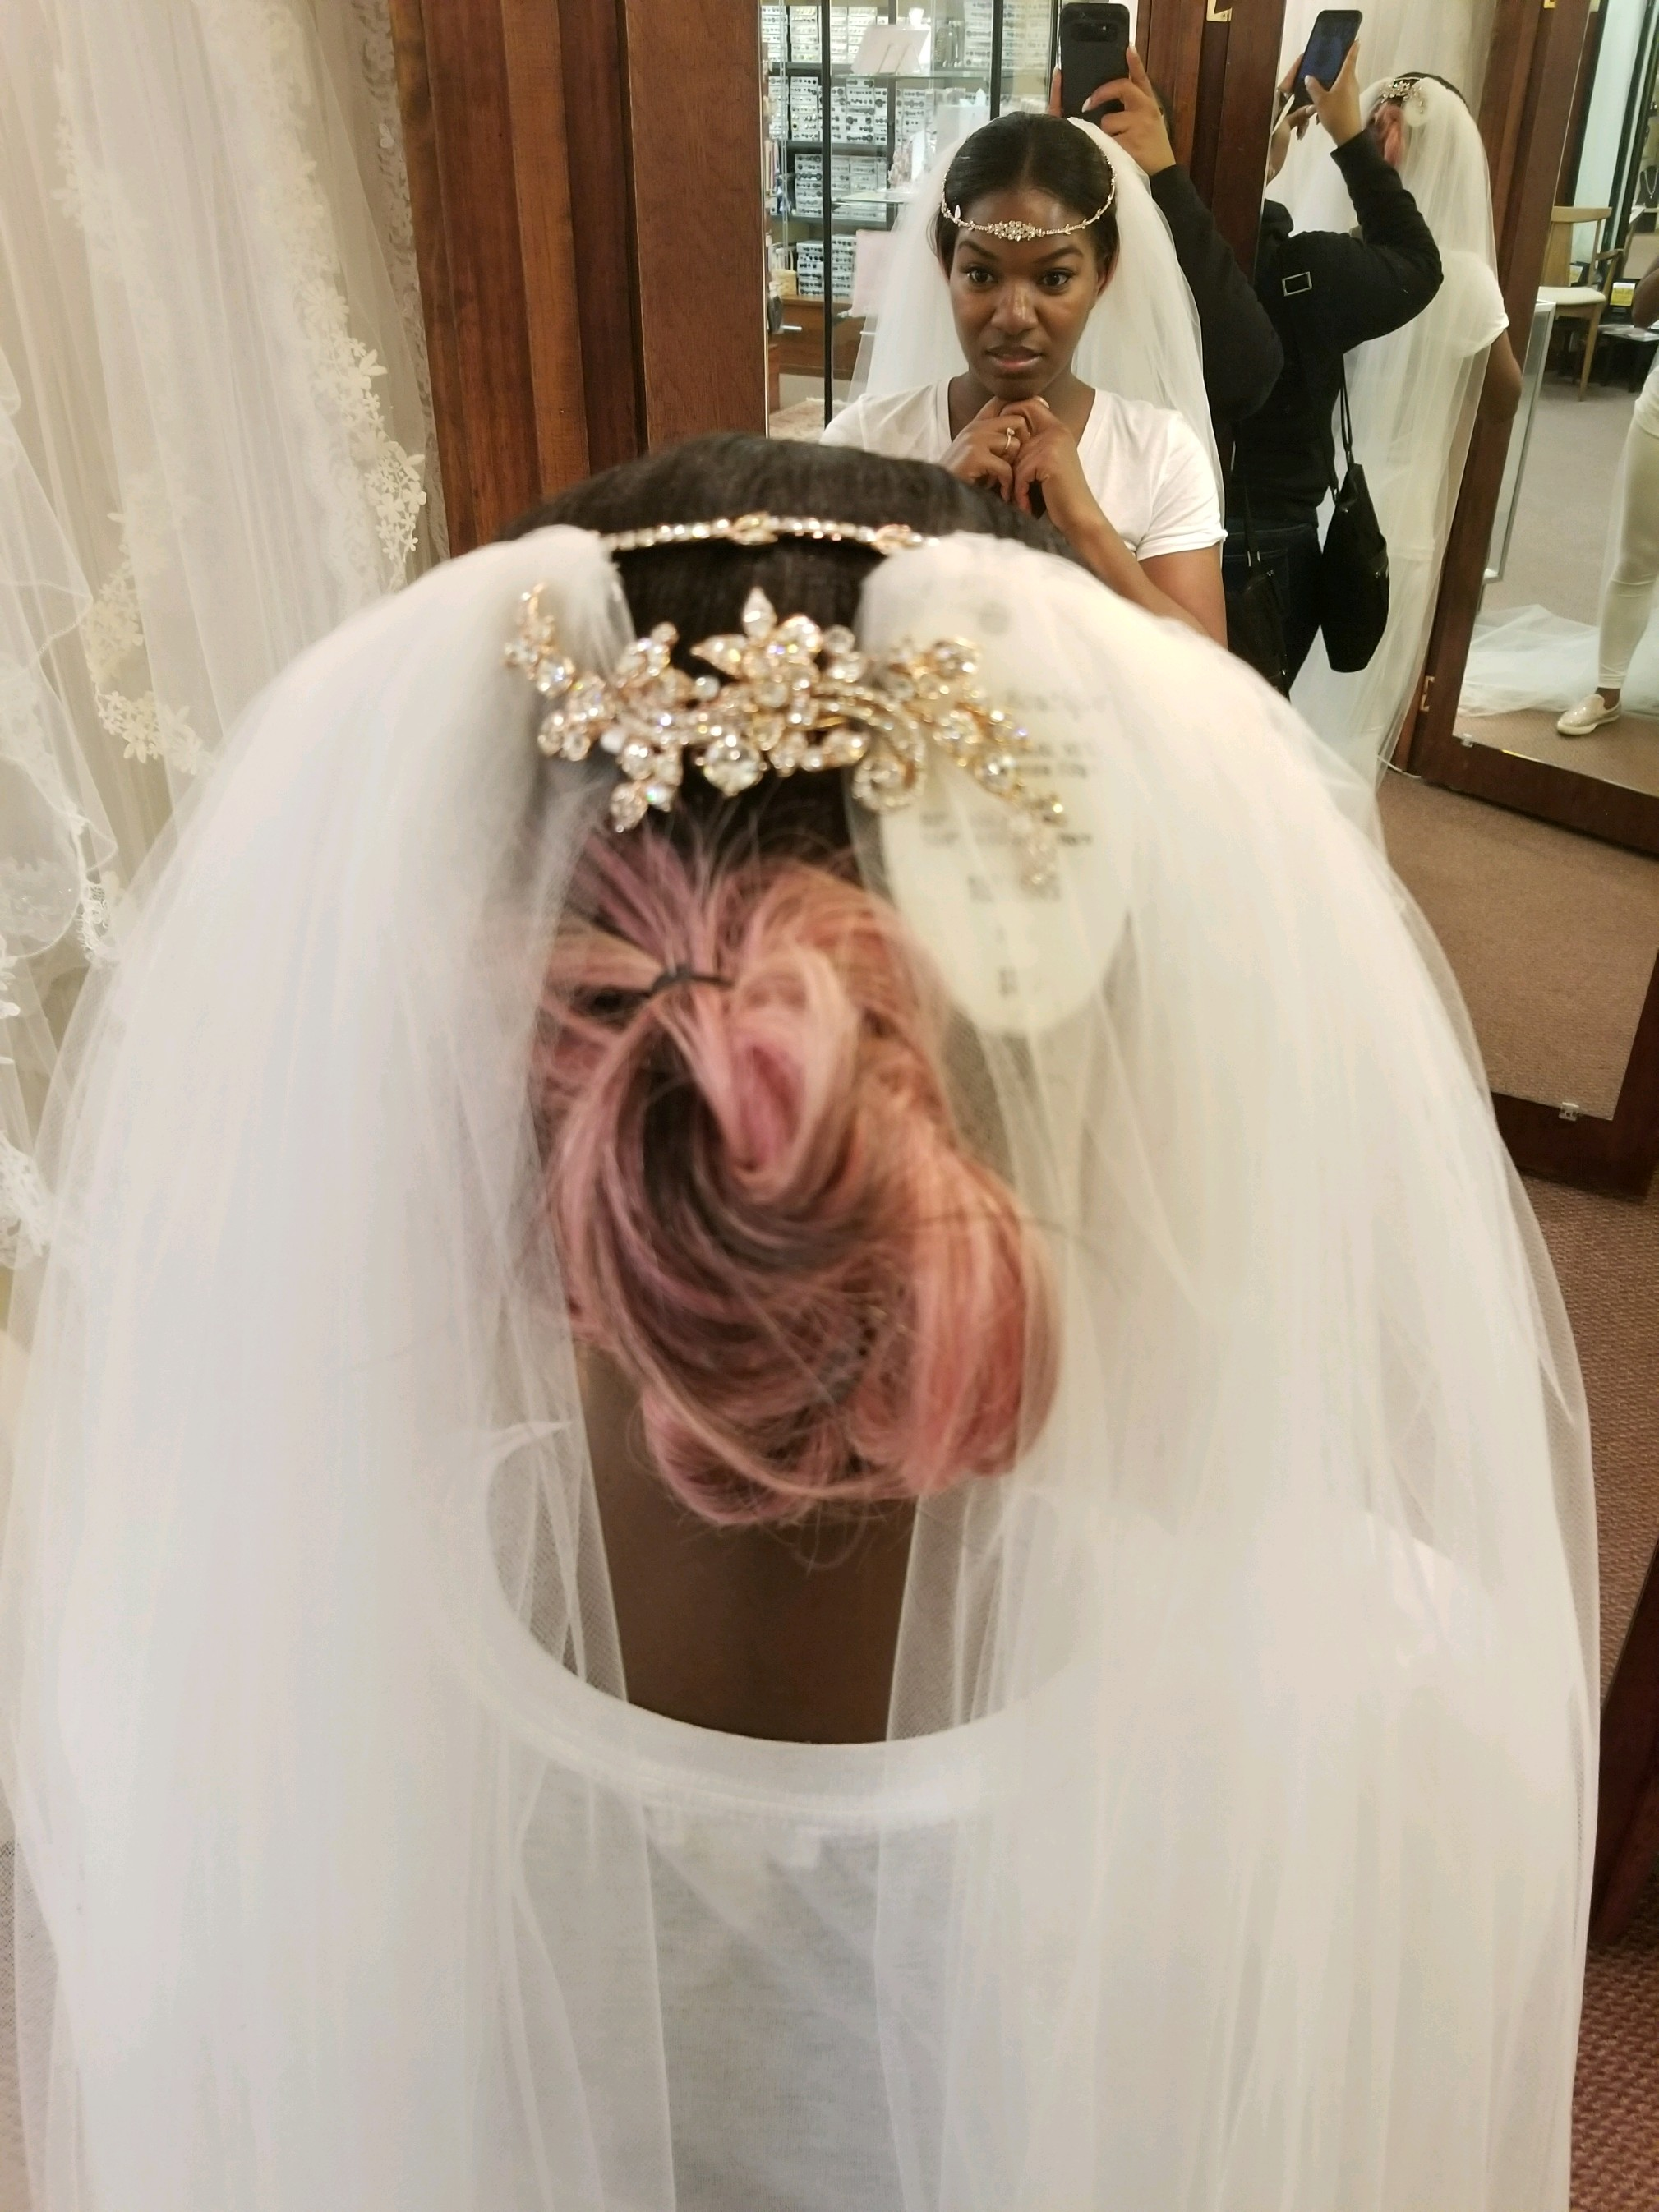 Black Destination Bride - BlackDesti Wedding Journal - Bridefriends Podcast -16 Headpiece 2 veils yes 5.JPG